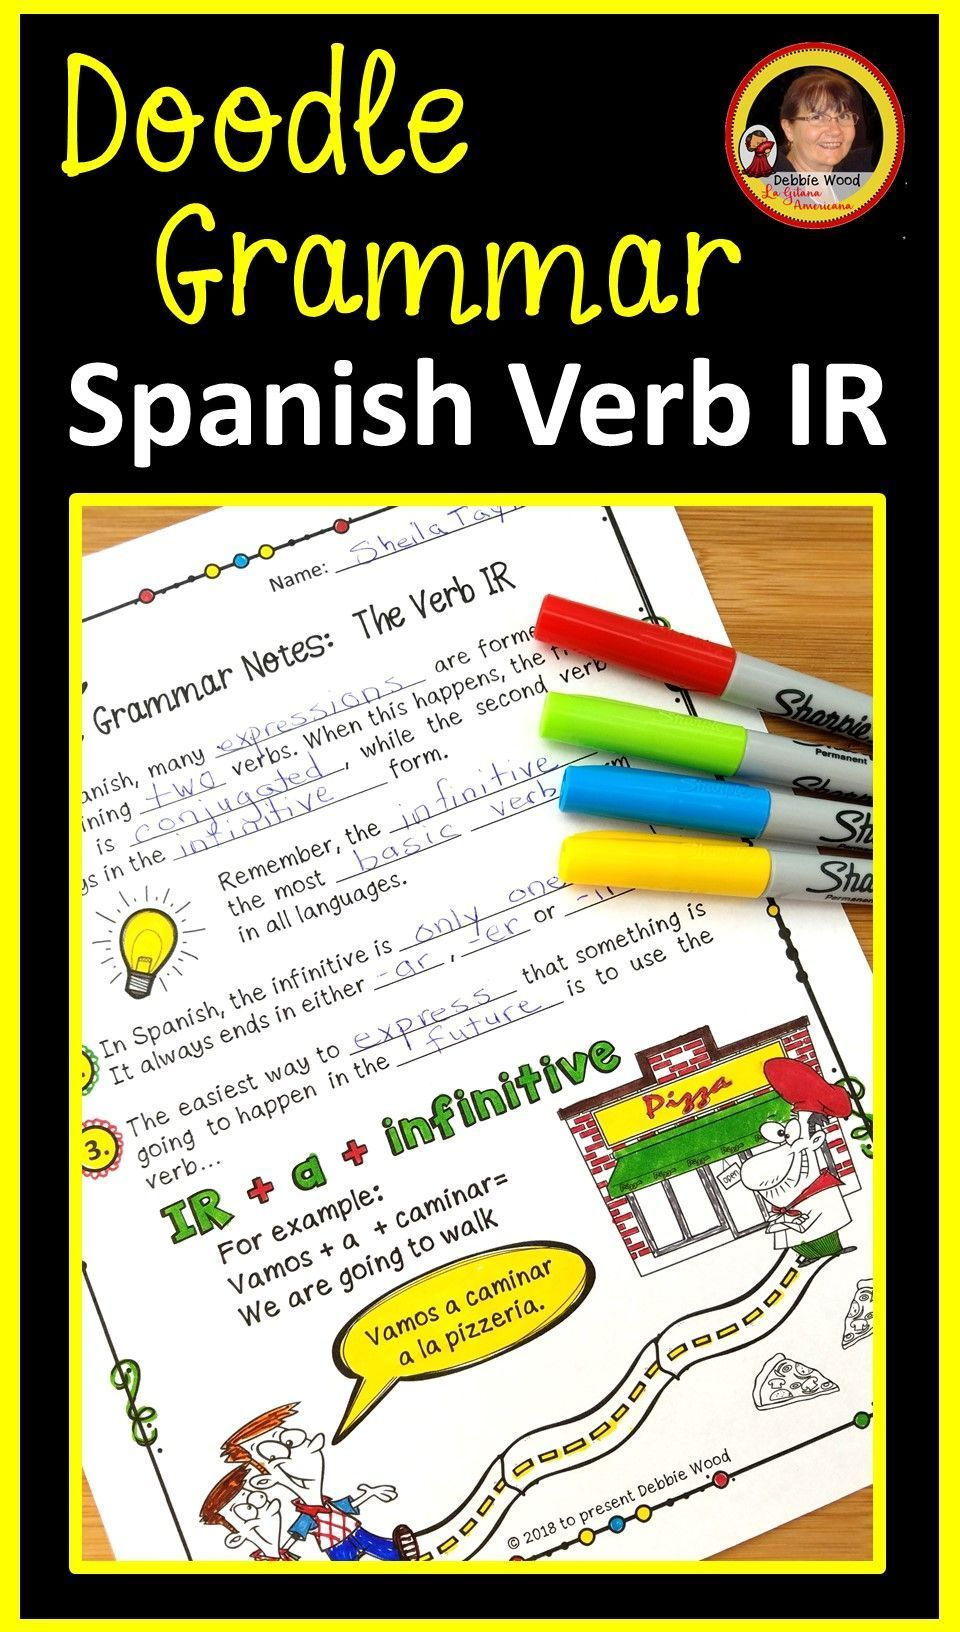 Teach Your Student The Spanish Verb Ir With These Engaging Spanish Doodle Notes And Worksheets This Is A Creative Metho Learning Spanish Spanish Verbs Spanish [ 1632 x 960 Pixel ]